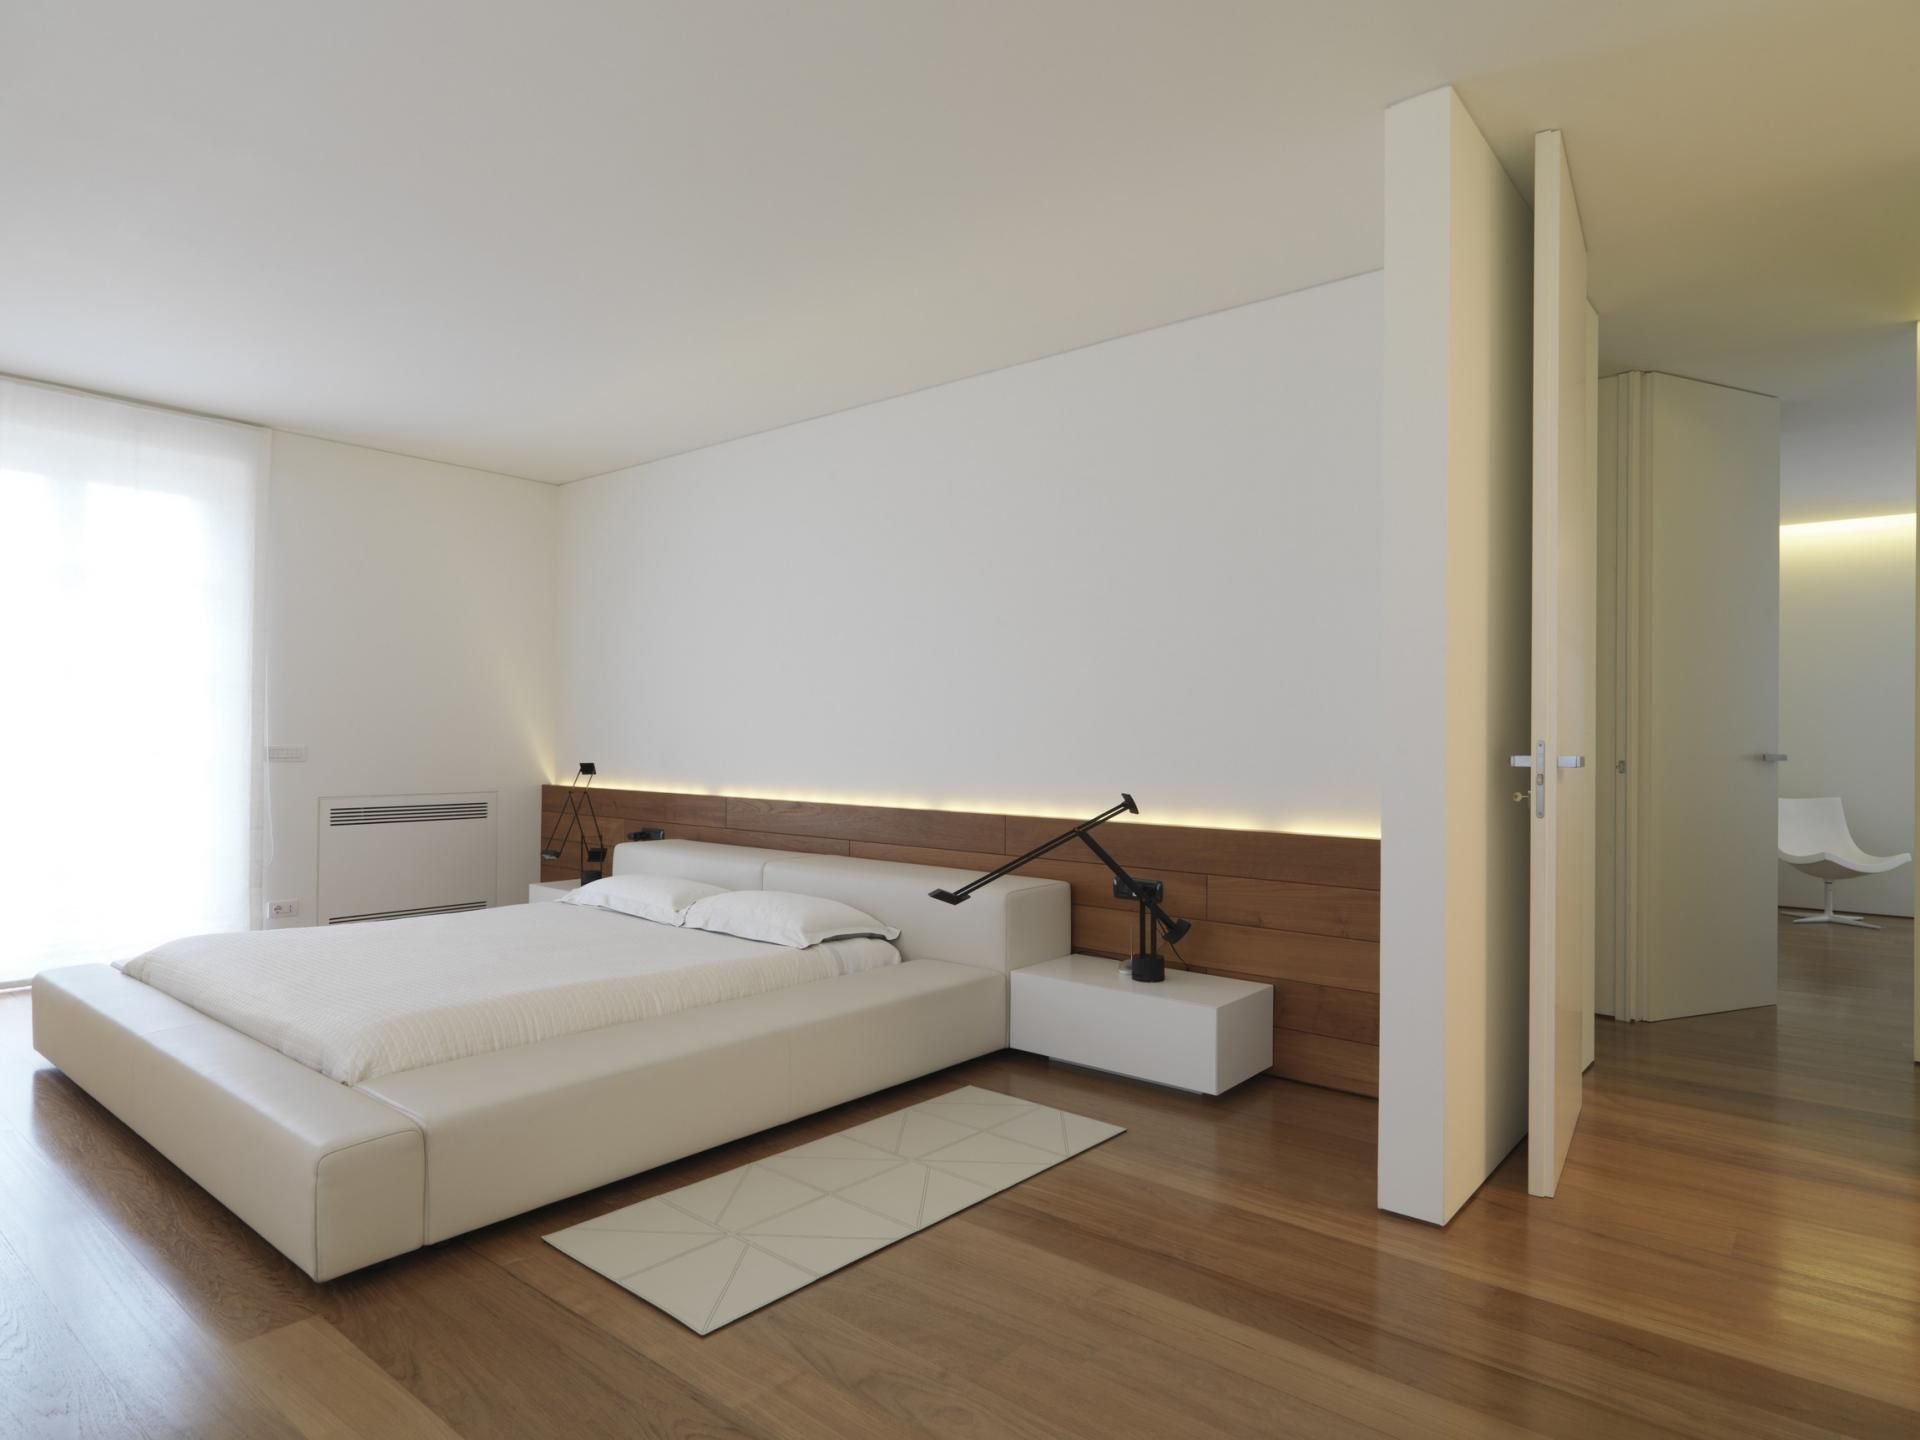 A House in Tuscany Minimalist bedroom design, Amazing